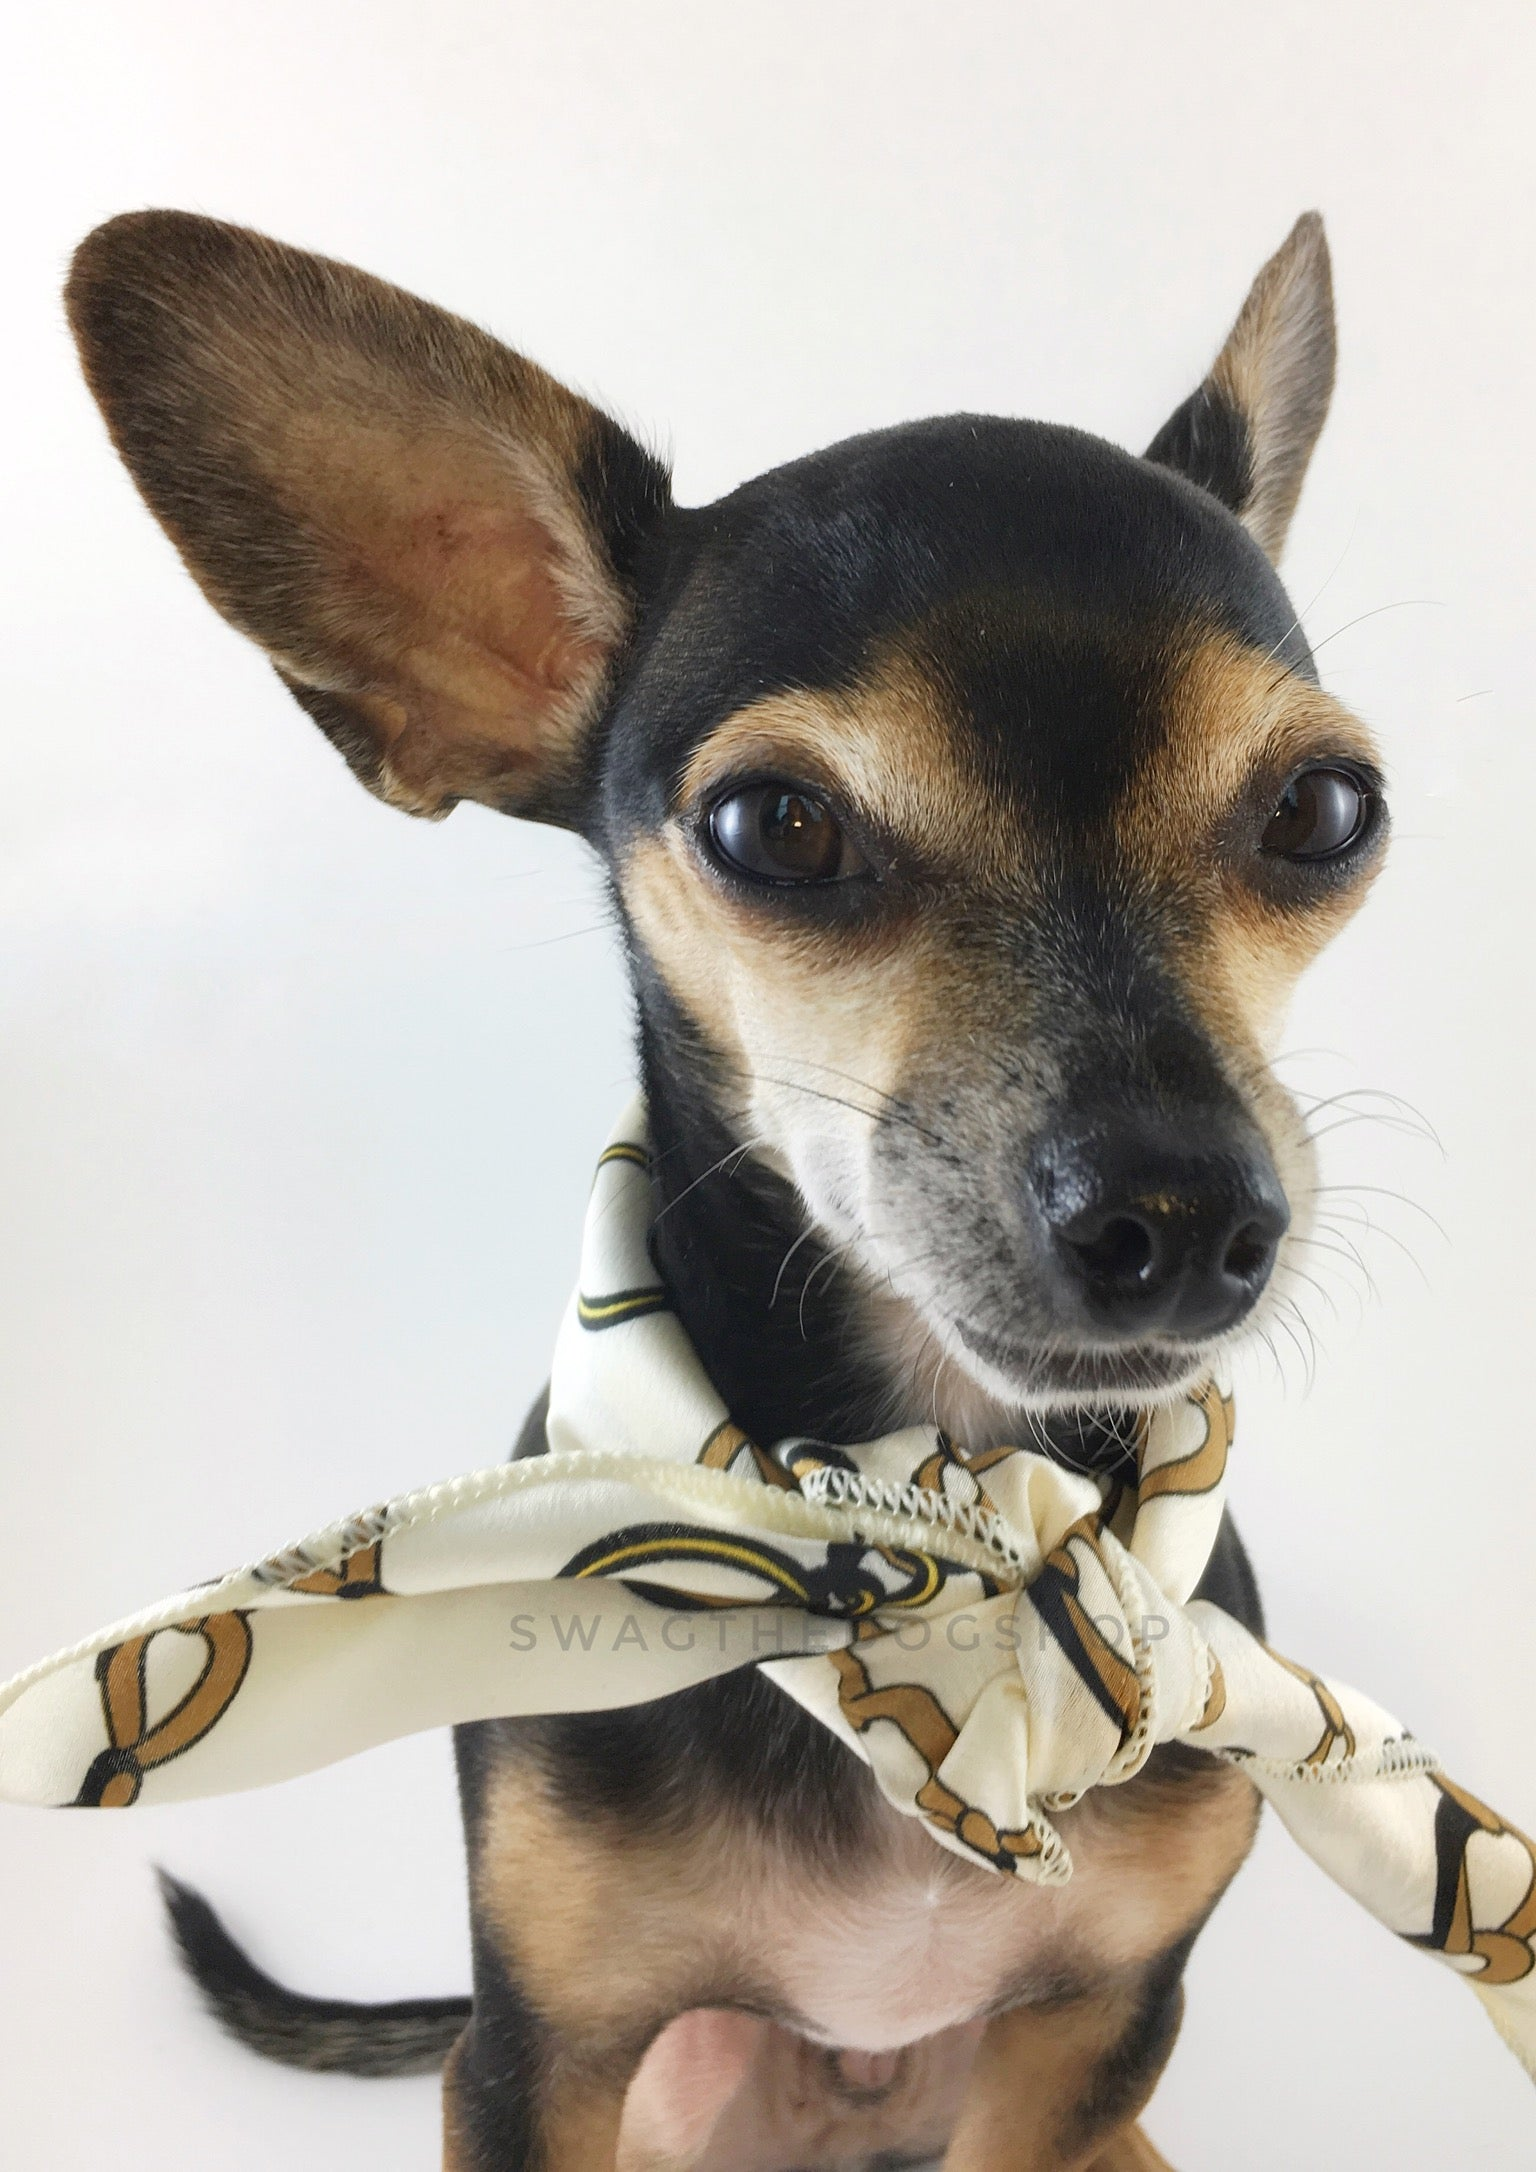 24K Vanilla Gold Swagdana Scarf - Bust of Cute Chihuahua Wearing Swagdana Scarf as Neck Scarf. Dog Bandana. Dog Scarf